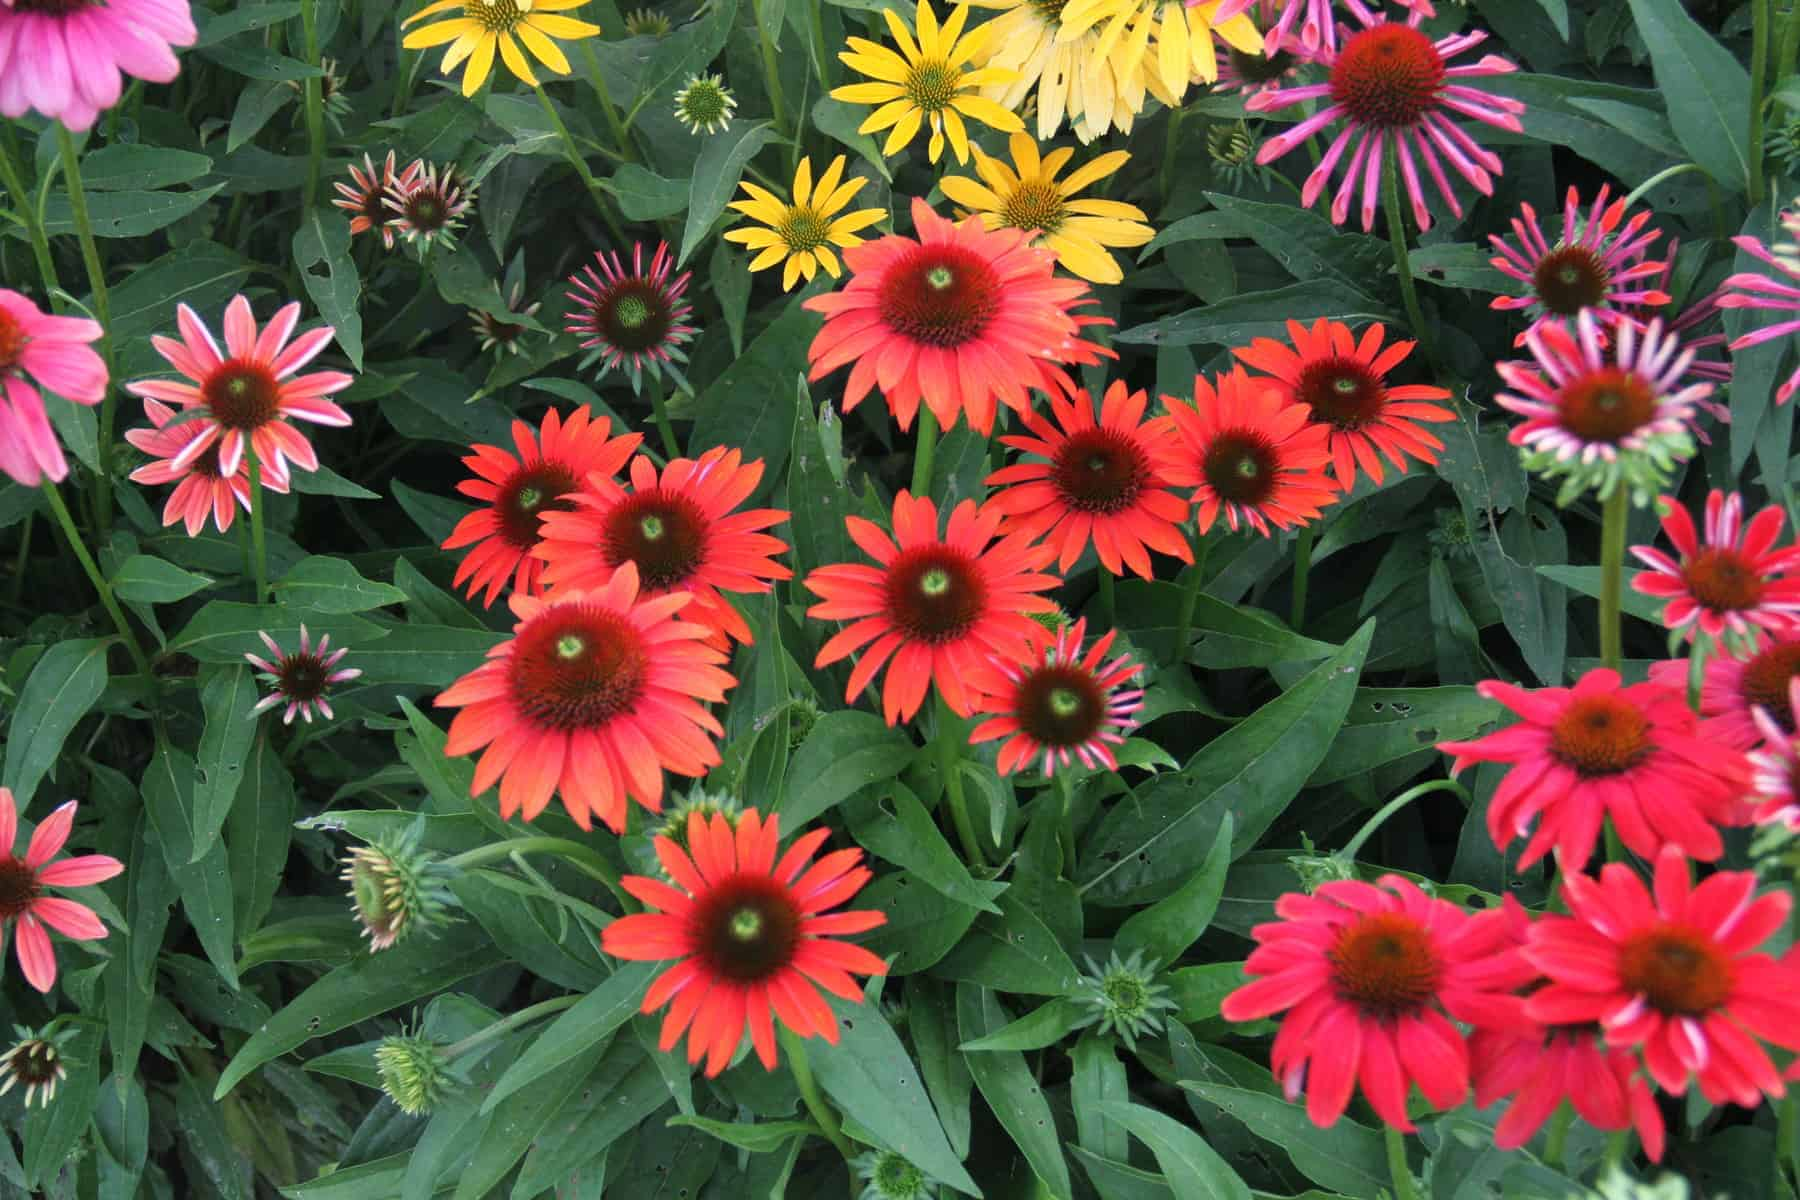 Echinacea Cheyenne Spirit - great for pollinators - All-America Selections Winner